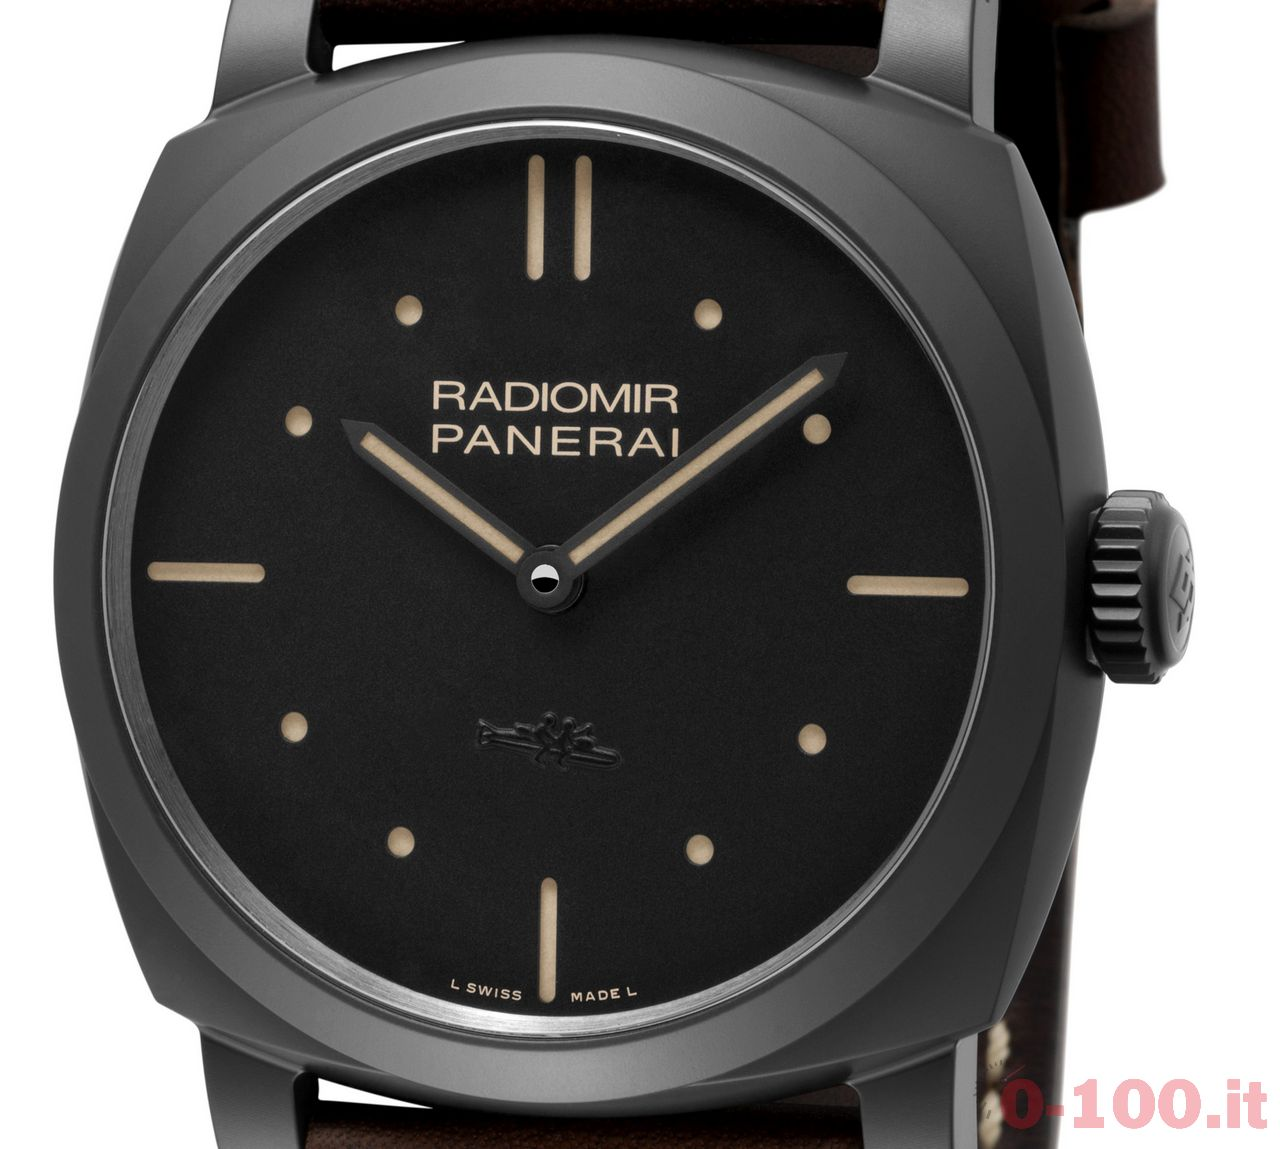 officine-panerari-radiomir-1940-3-days-ceramica-pam00577-price_0-1002